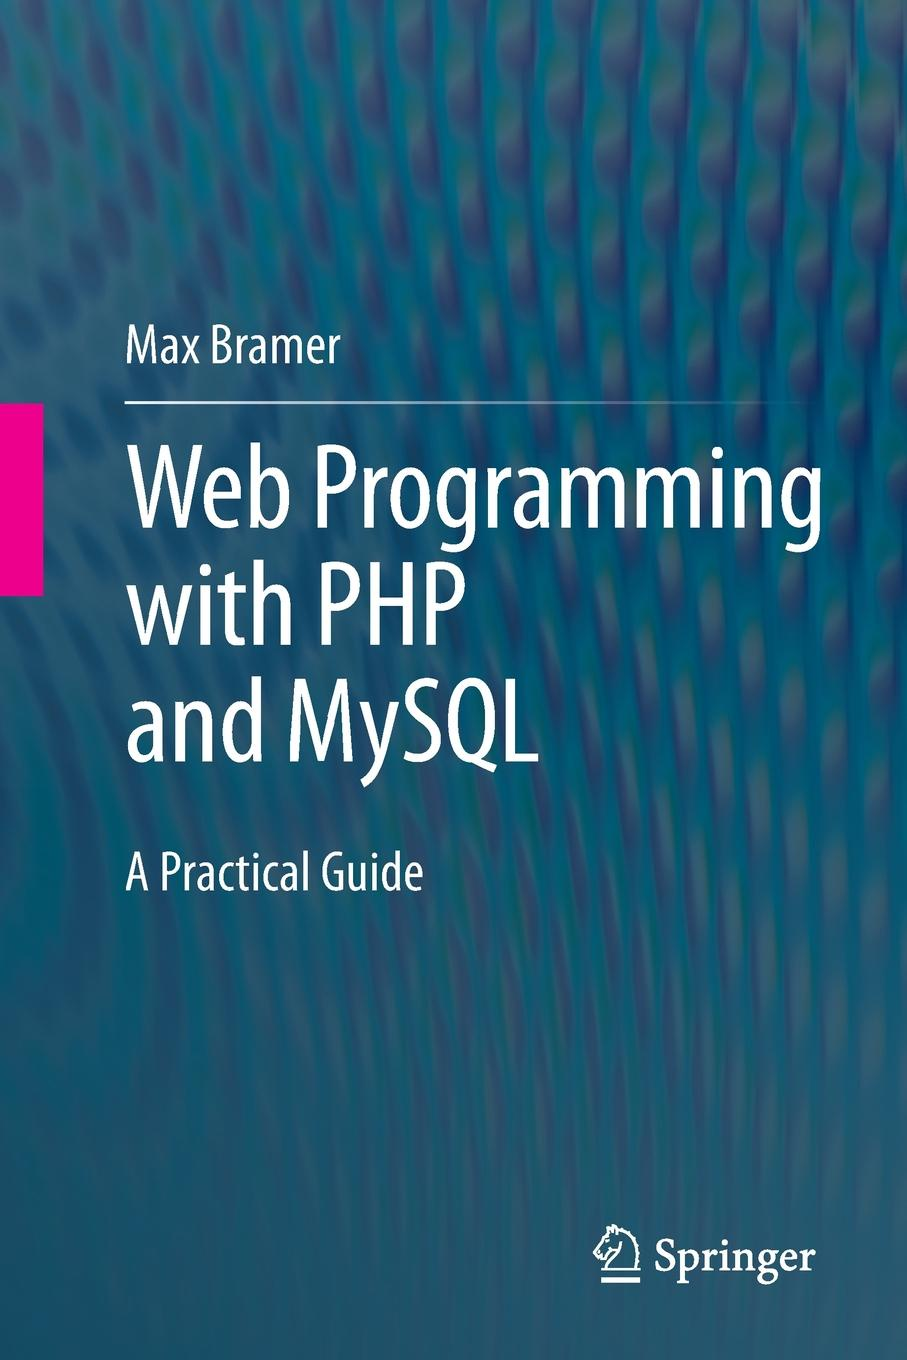 дамашке г php и mysql Max Bramer Web Programming with PHP and MySQL. A Practical Guide